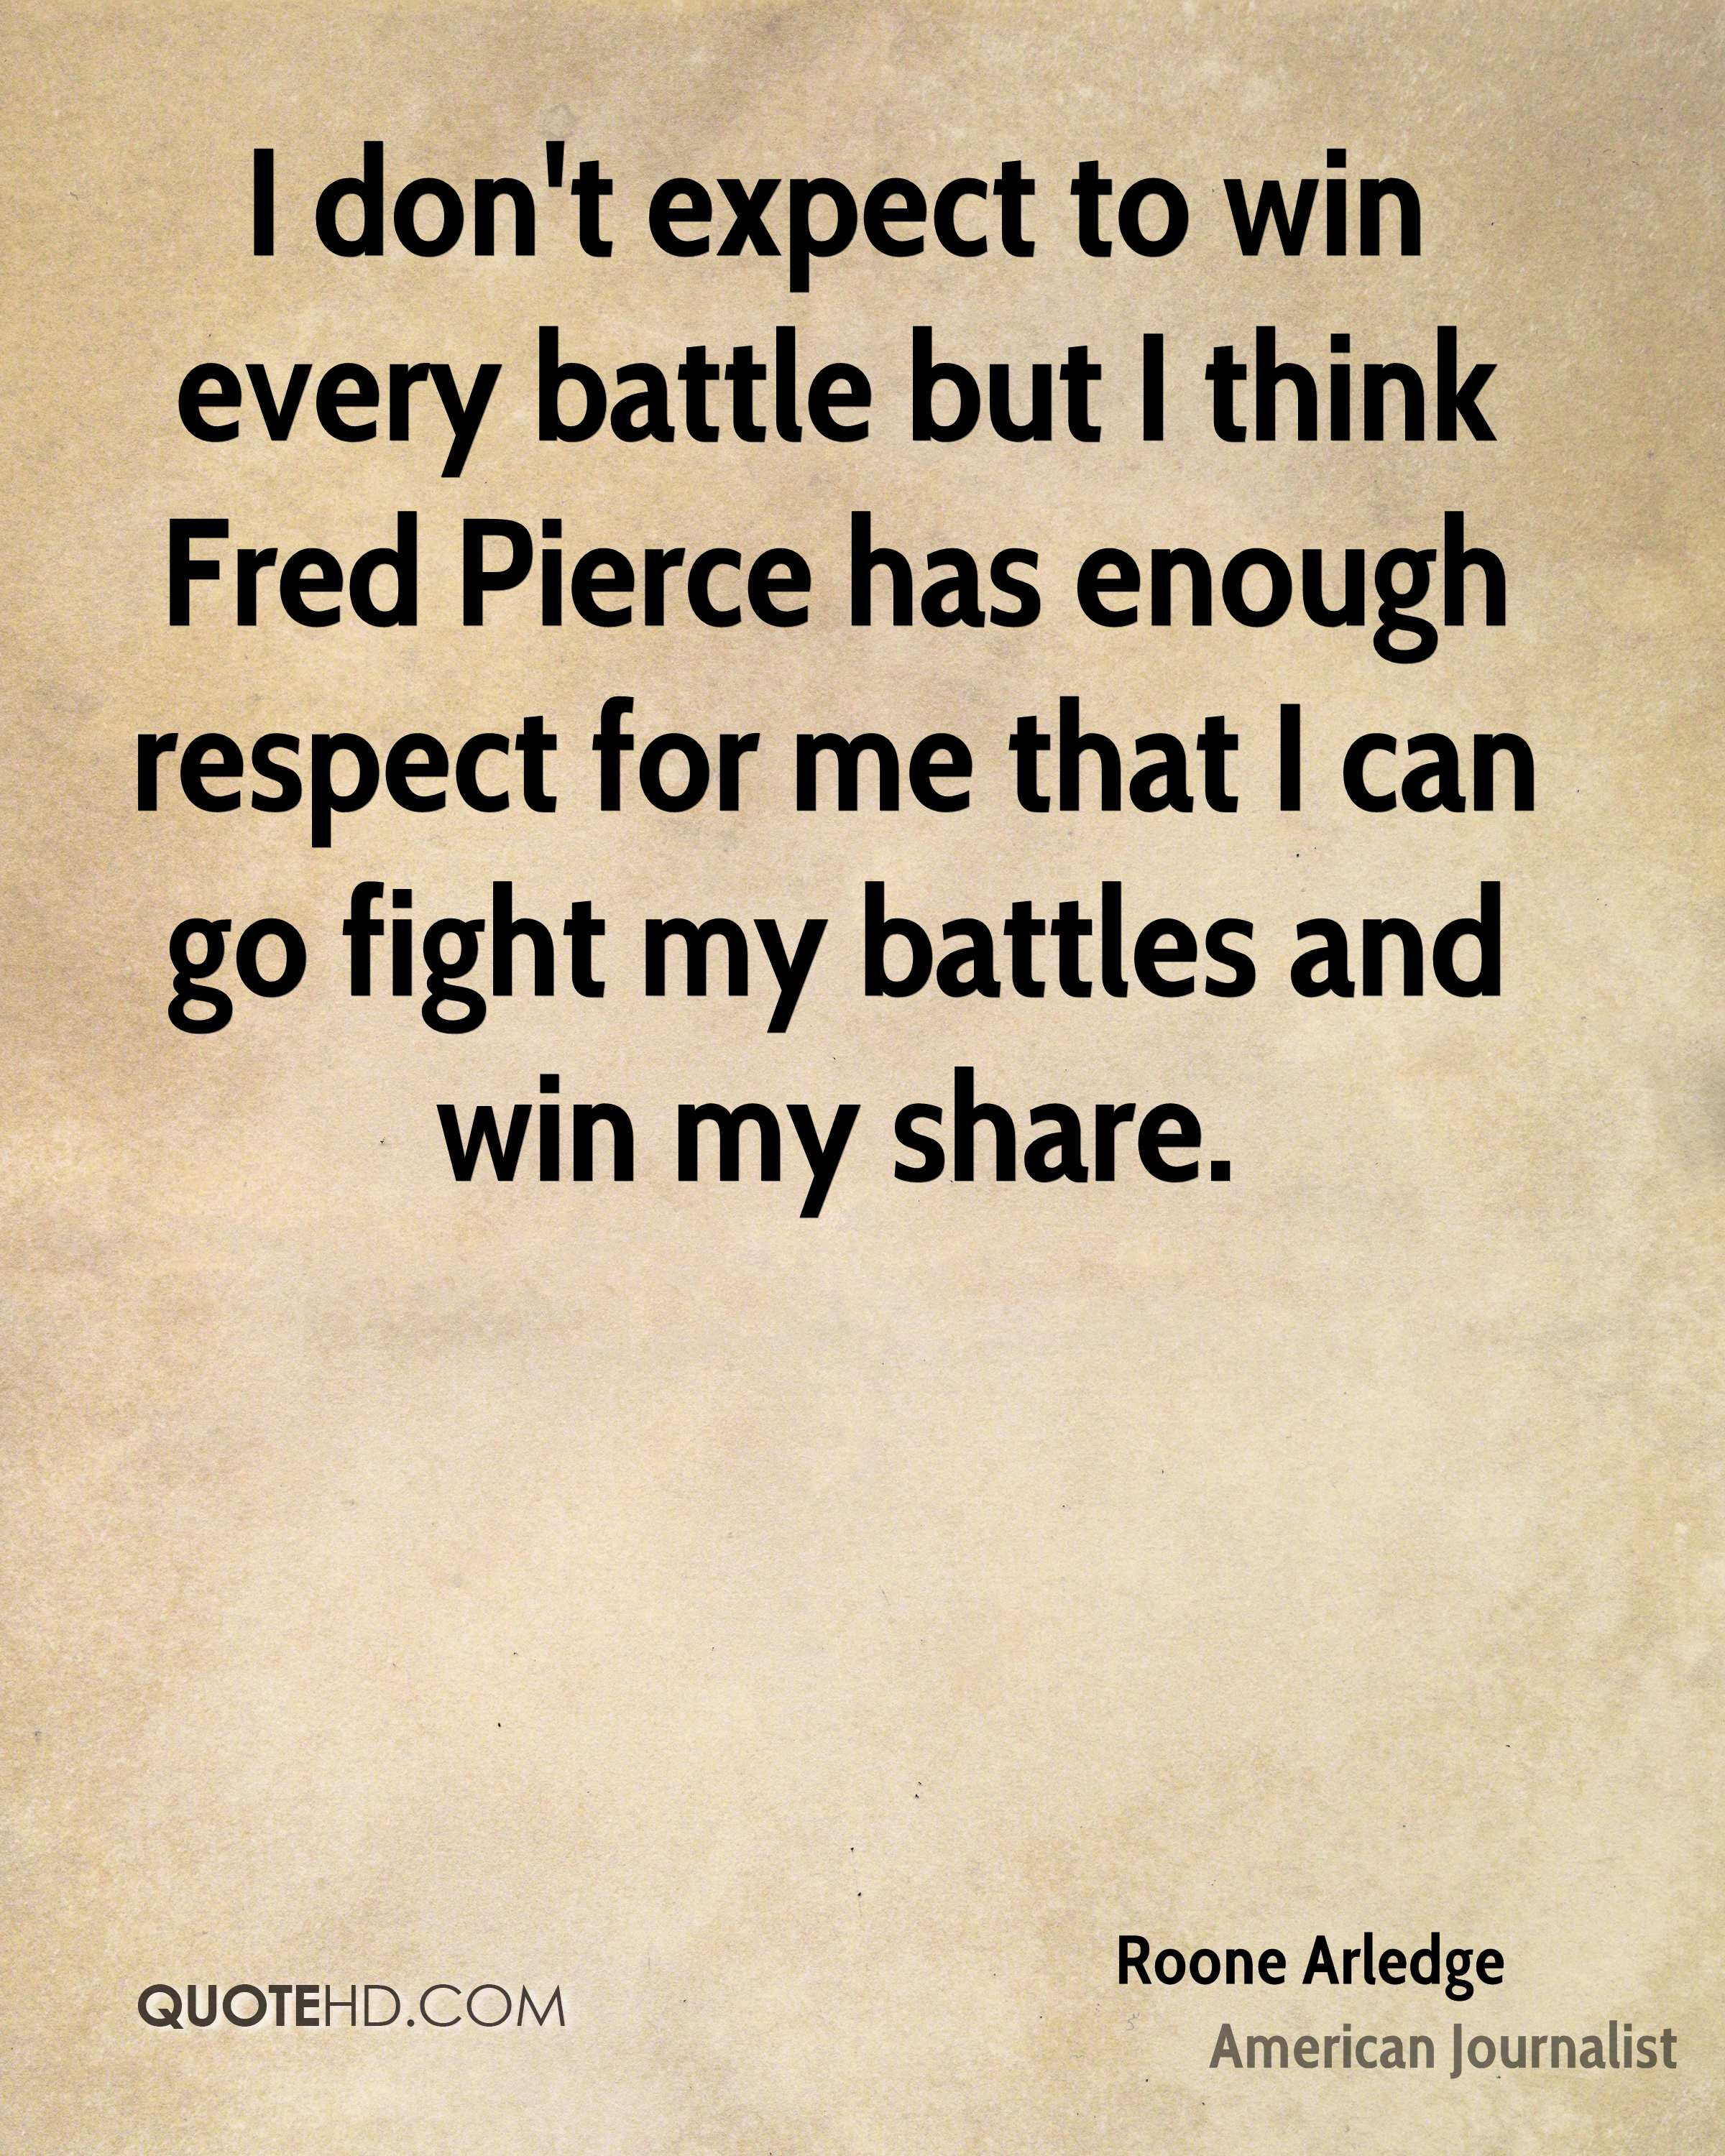 I don't expect to win every battle but I think Fred Pierce has enough respect for me that I can go fight my battles and win my share.